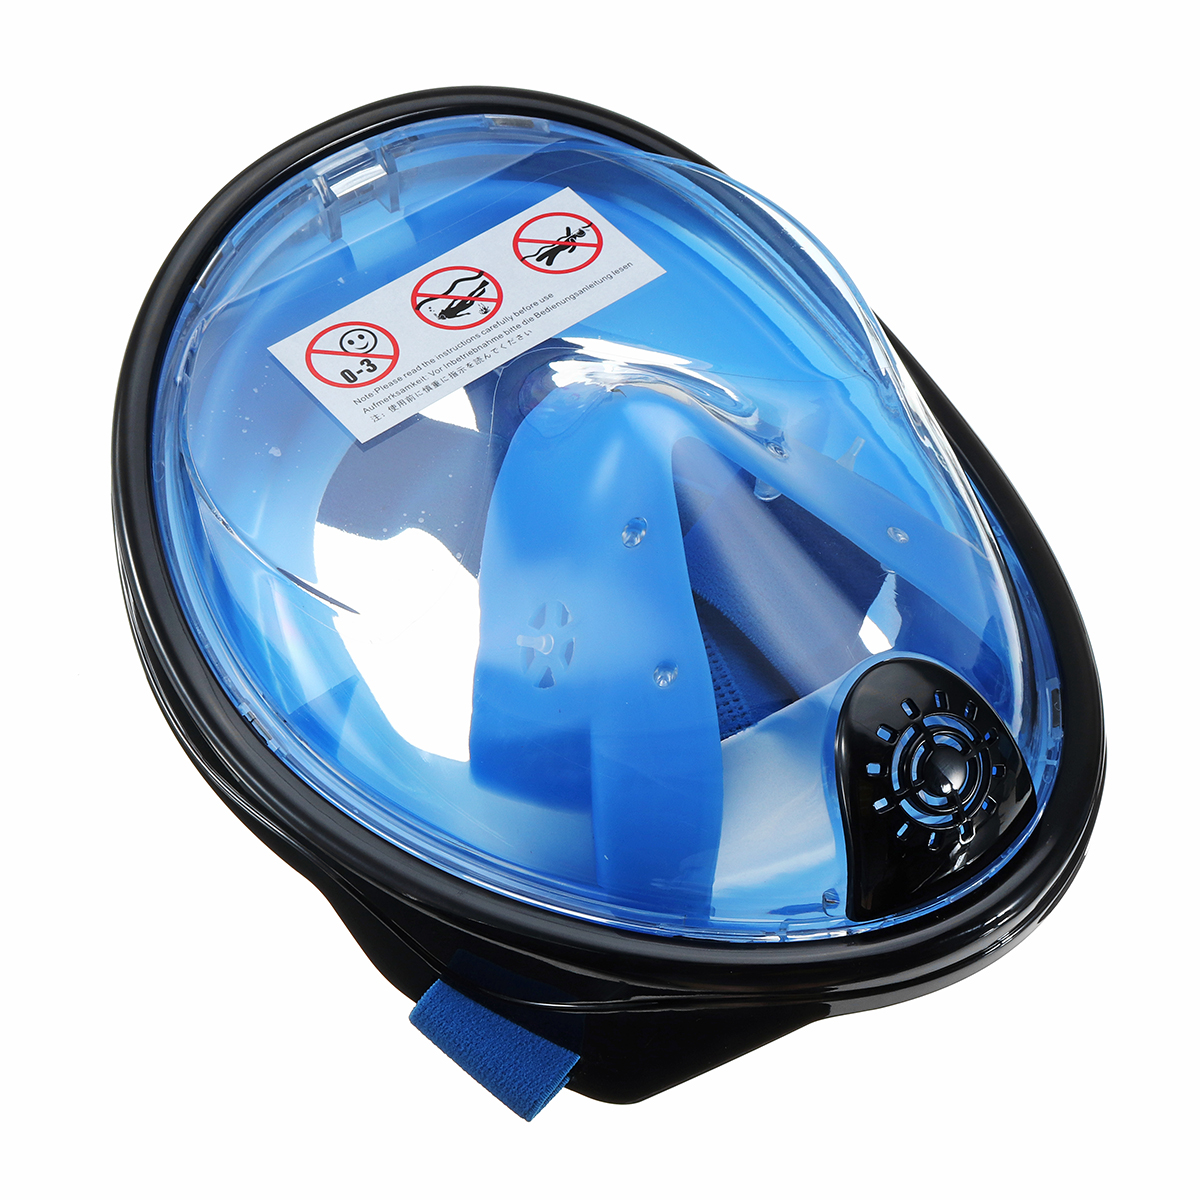 180° Viewing Area Full Dry Fog Resistant Snorkeling Mask